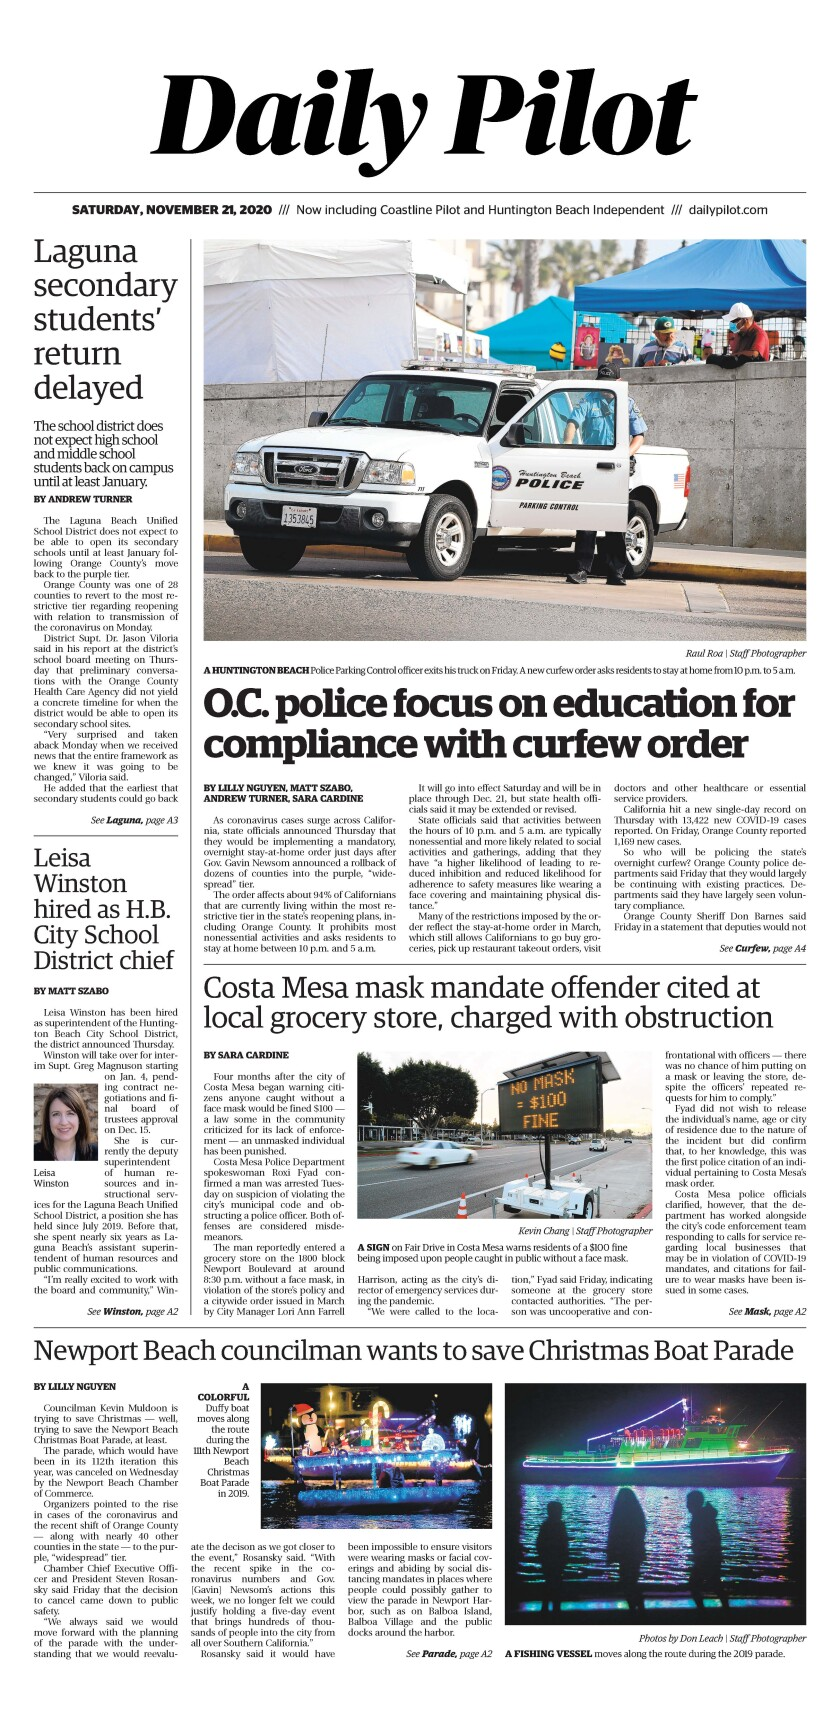 Front page of Daily Pilot e-newspaper for Saturday, Nov. 21, 2020